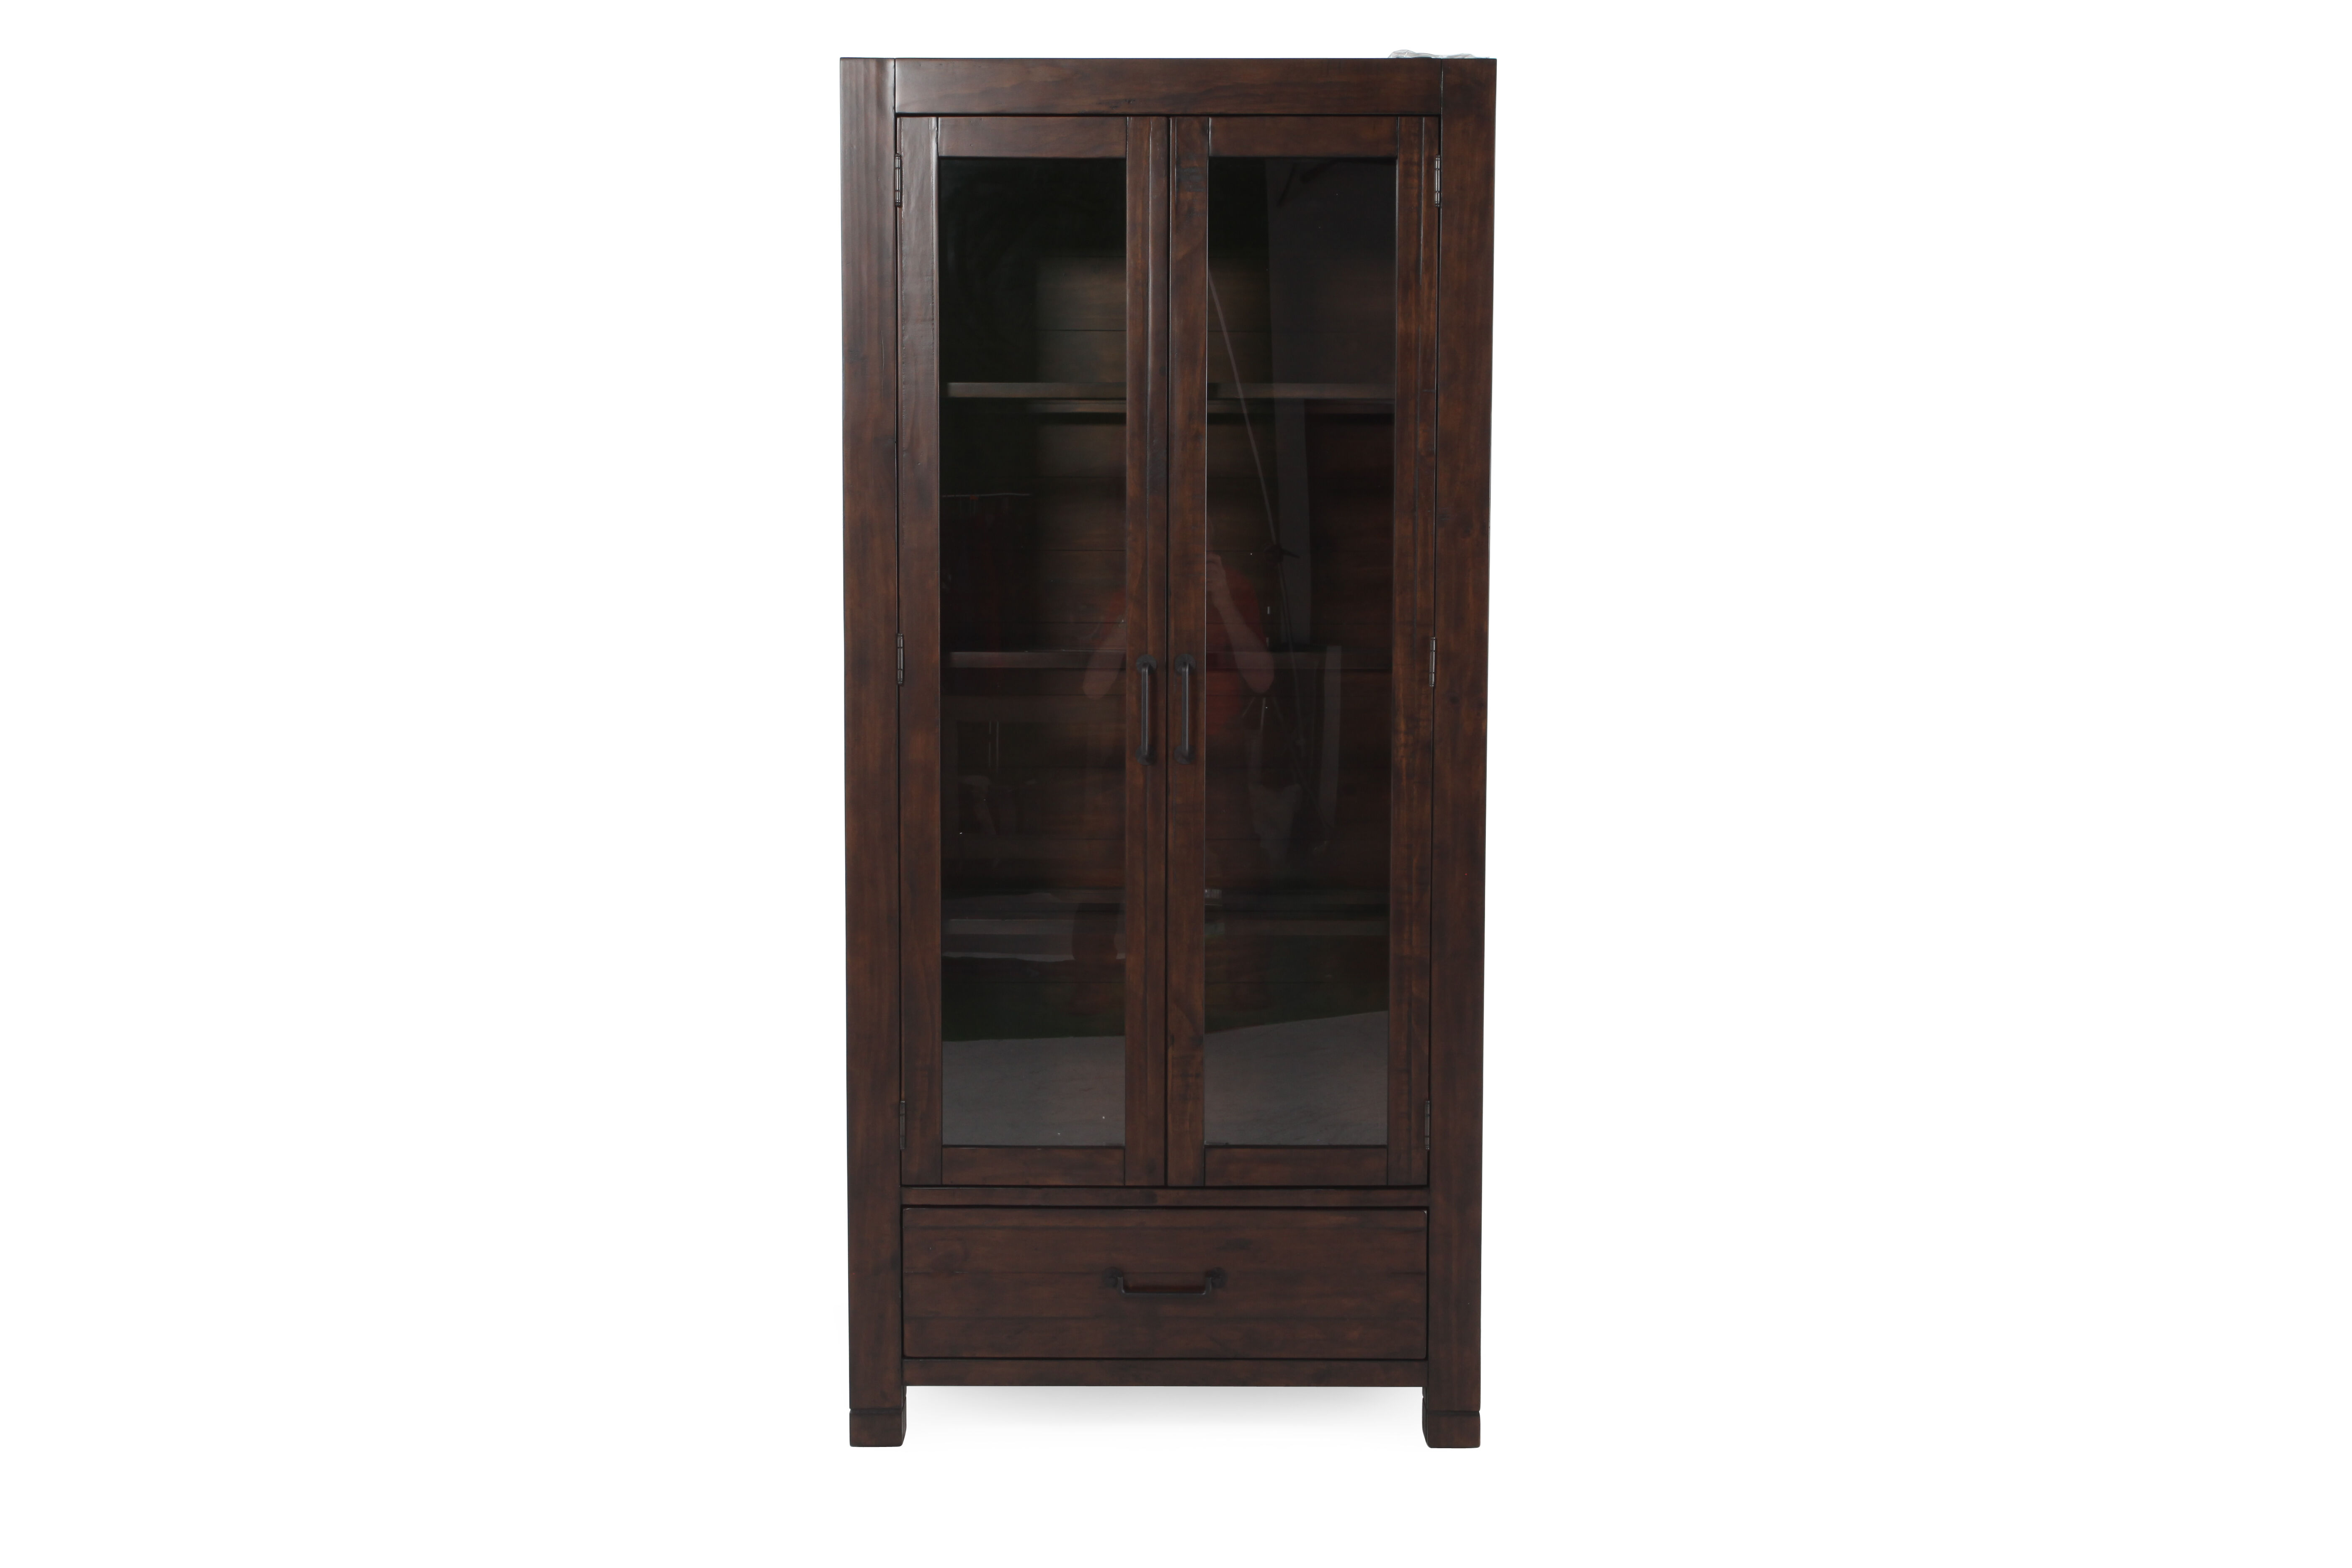 Images Transitional Solid Pine Curio Cabinet In Rustic Pine Transitional  Solid Pine Curio Cabinet In Rustic Pine